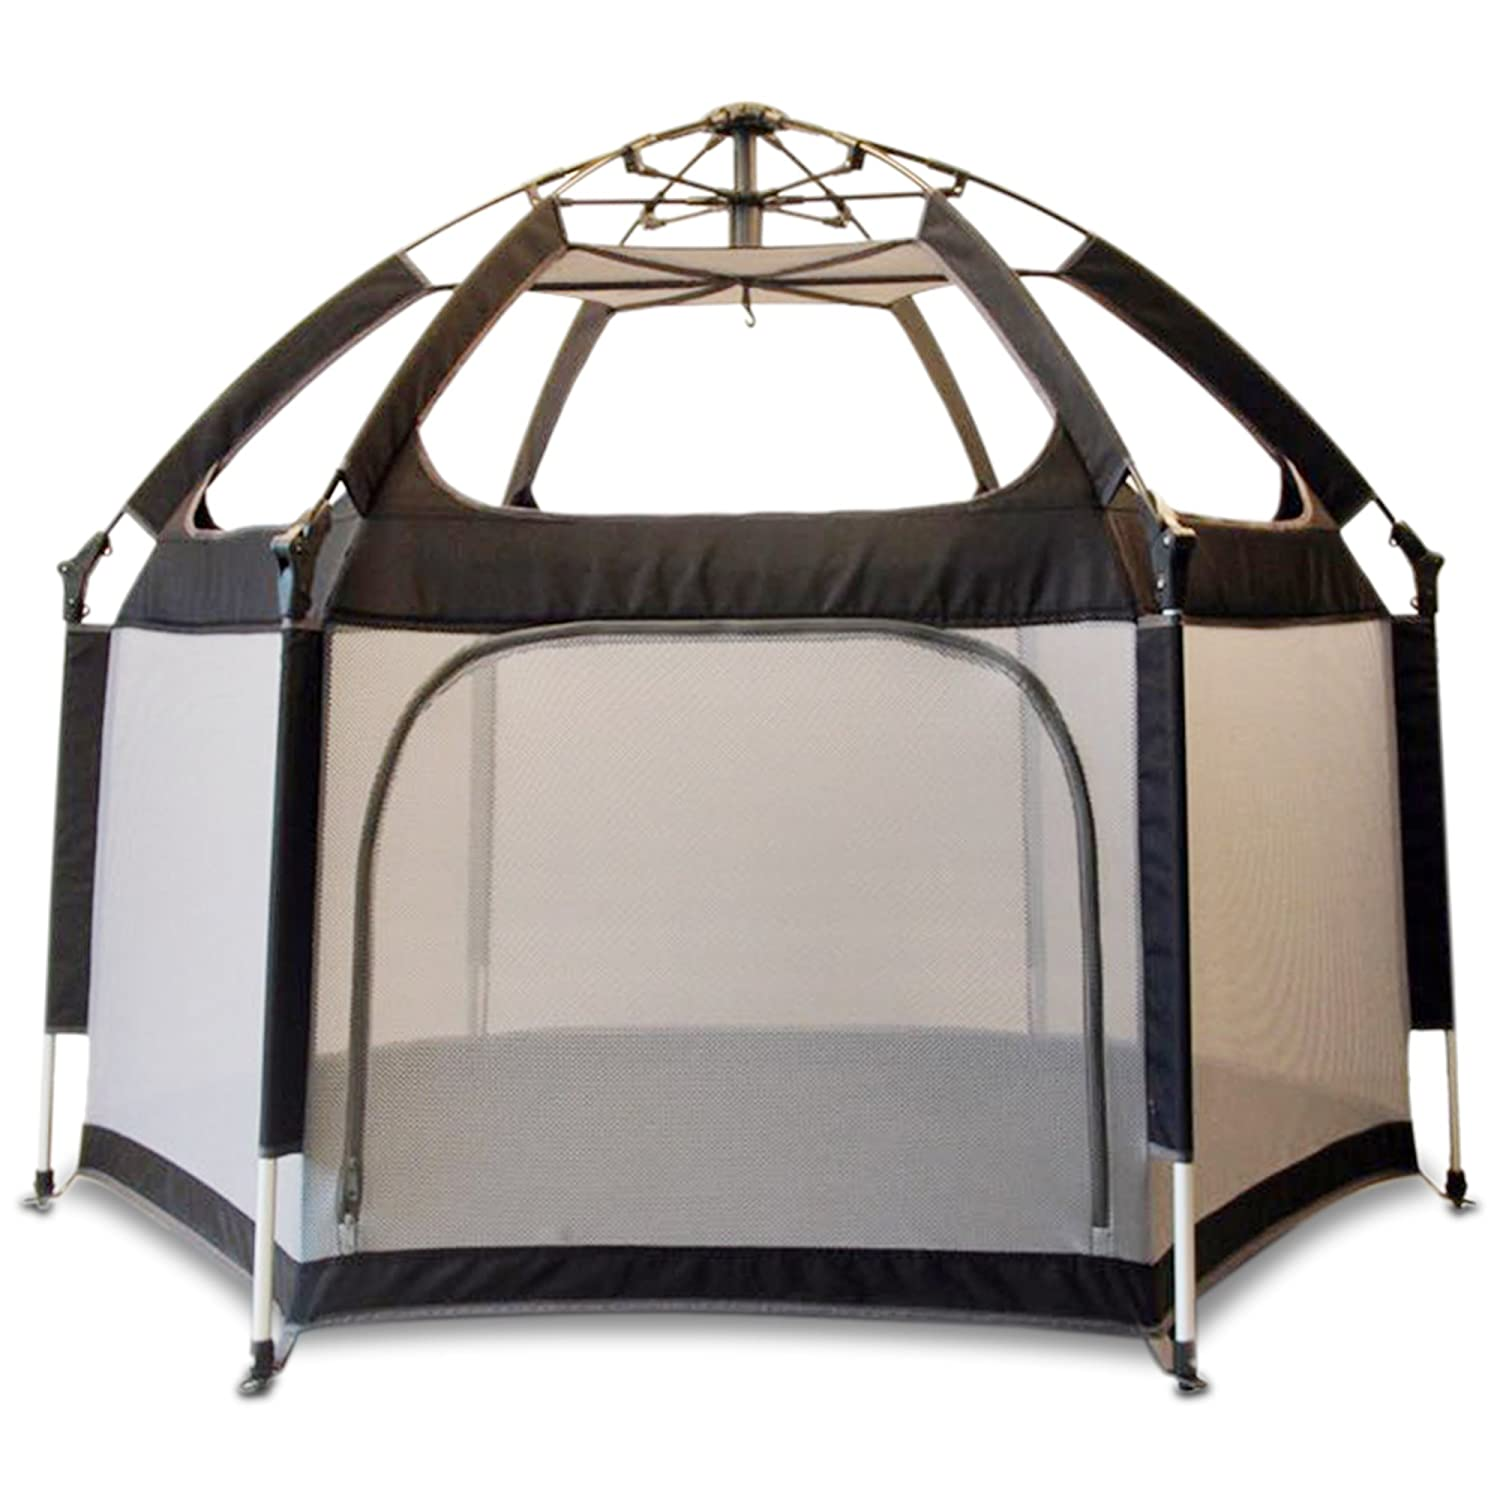 Pop ' n Go – The World 's Best Kids Playpen – 軽量&ポータブル – Insideまたは屋外の使用 – 安全ロックKeep Playpenしっかりと接地and Secure – Free UV Shade with every order 。 グレイ CBC B07DLKX66X Black and Gray